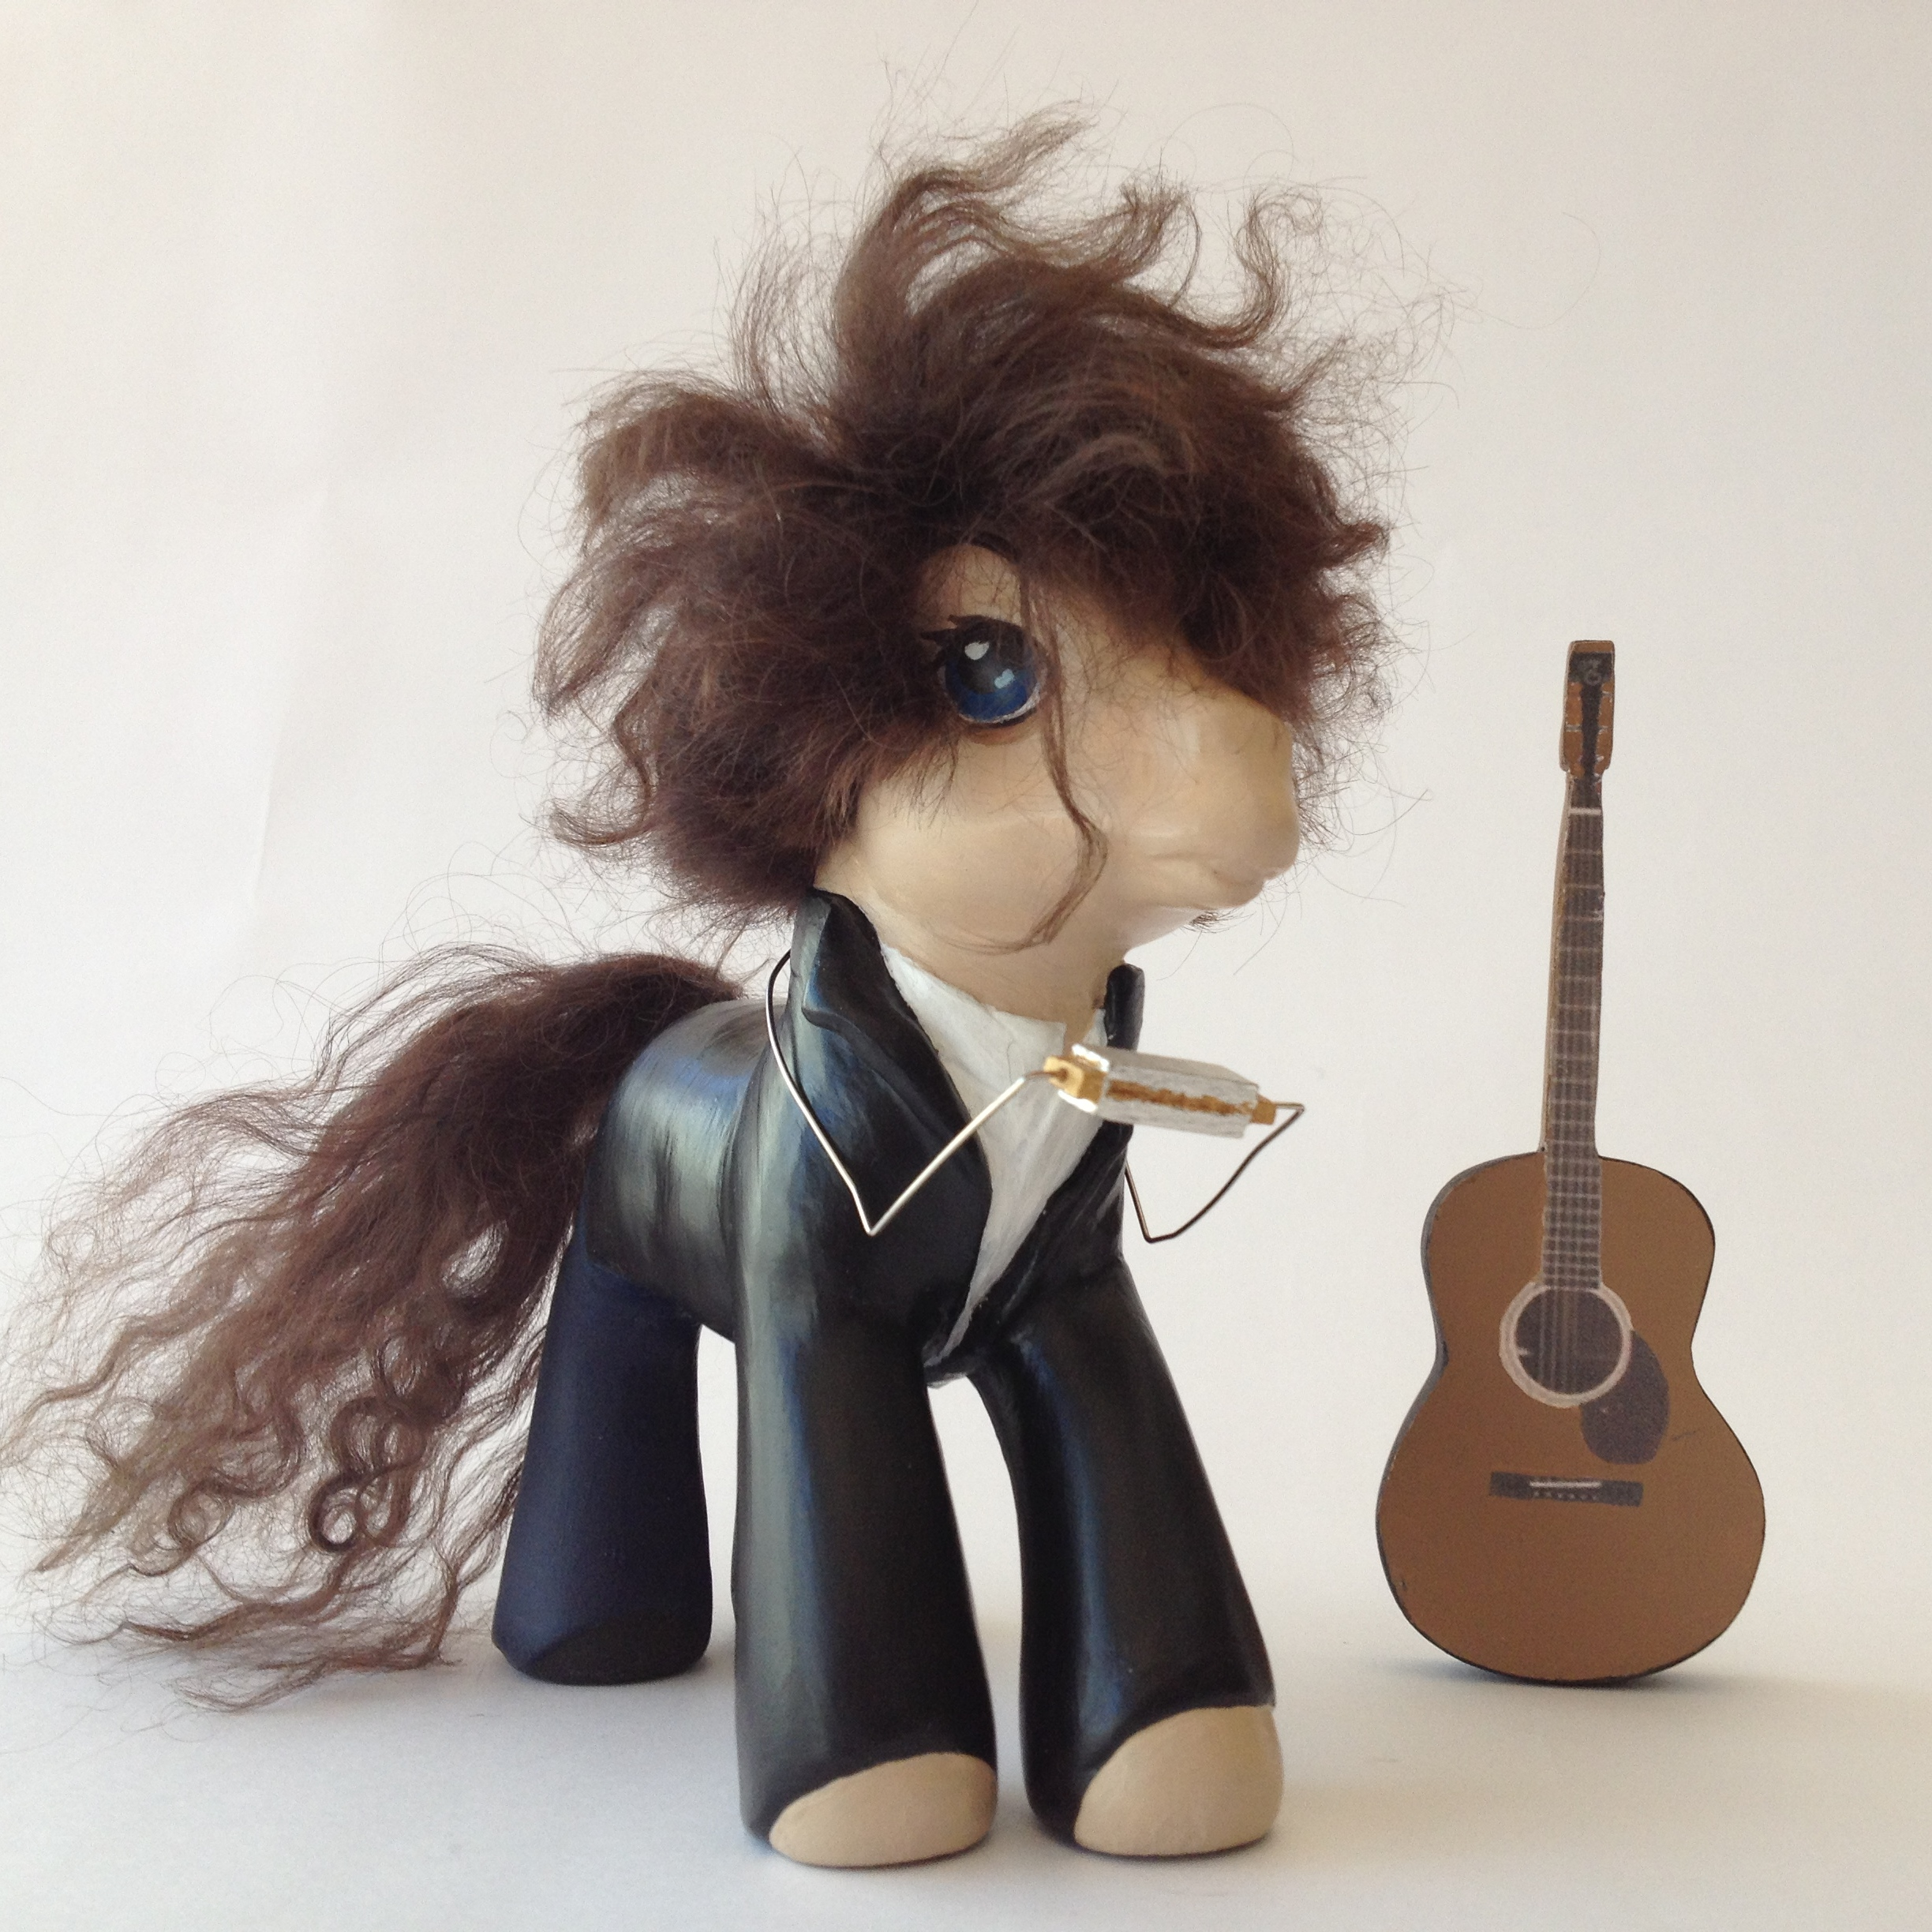 Da MAN. Complete with guitar & harmonica. And hair.